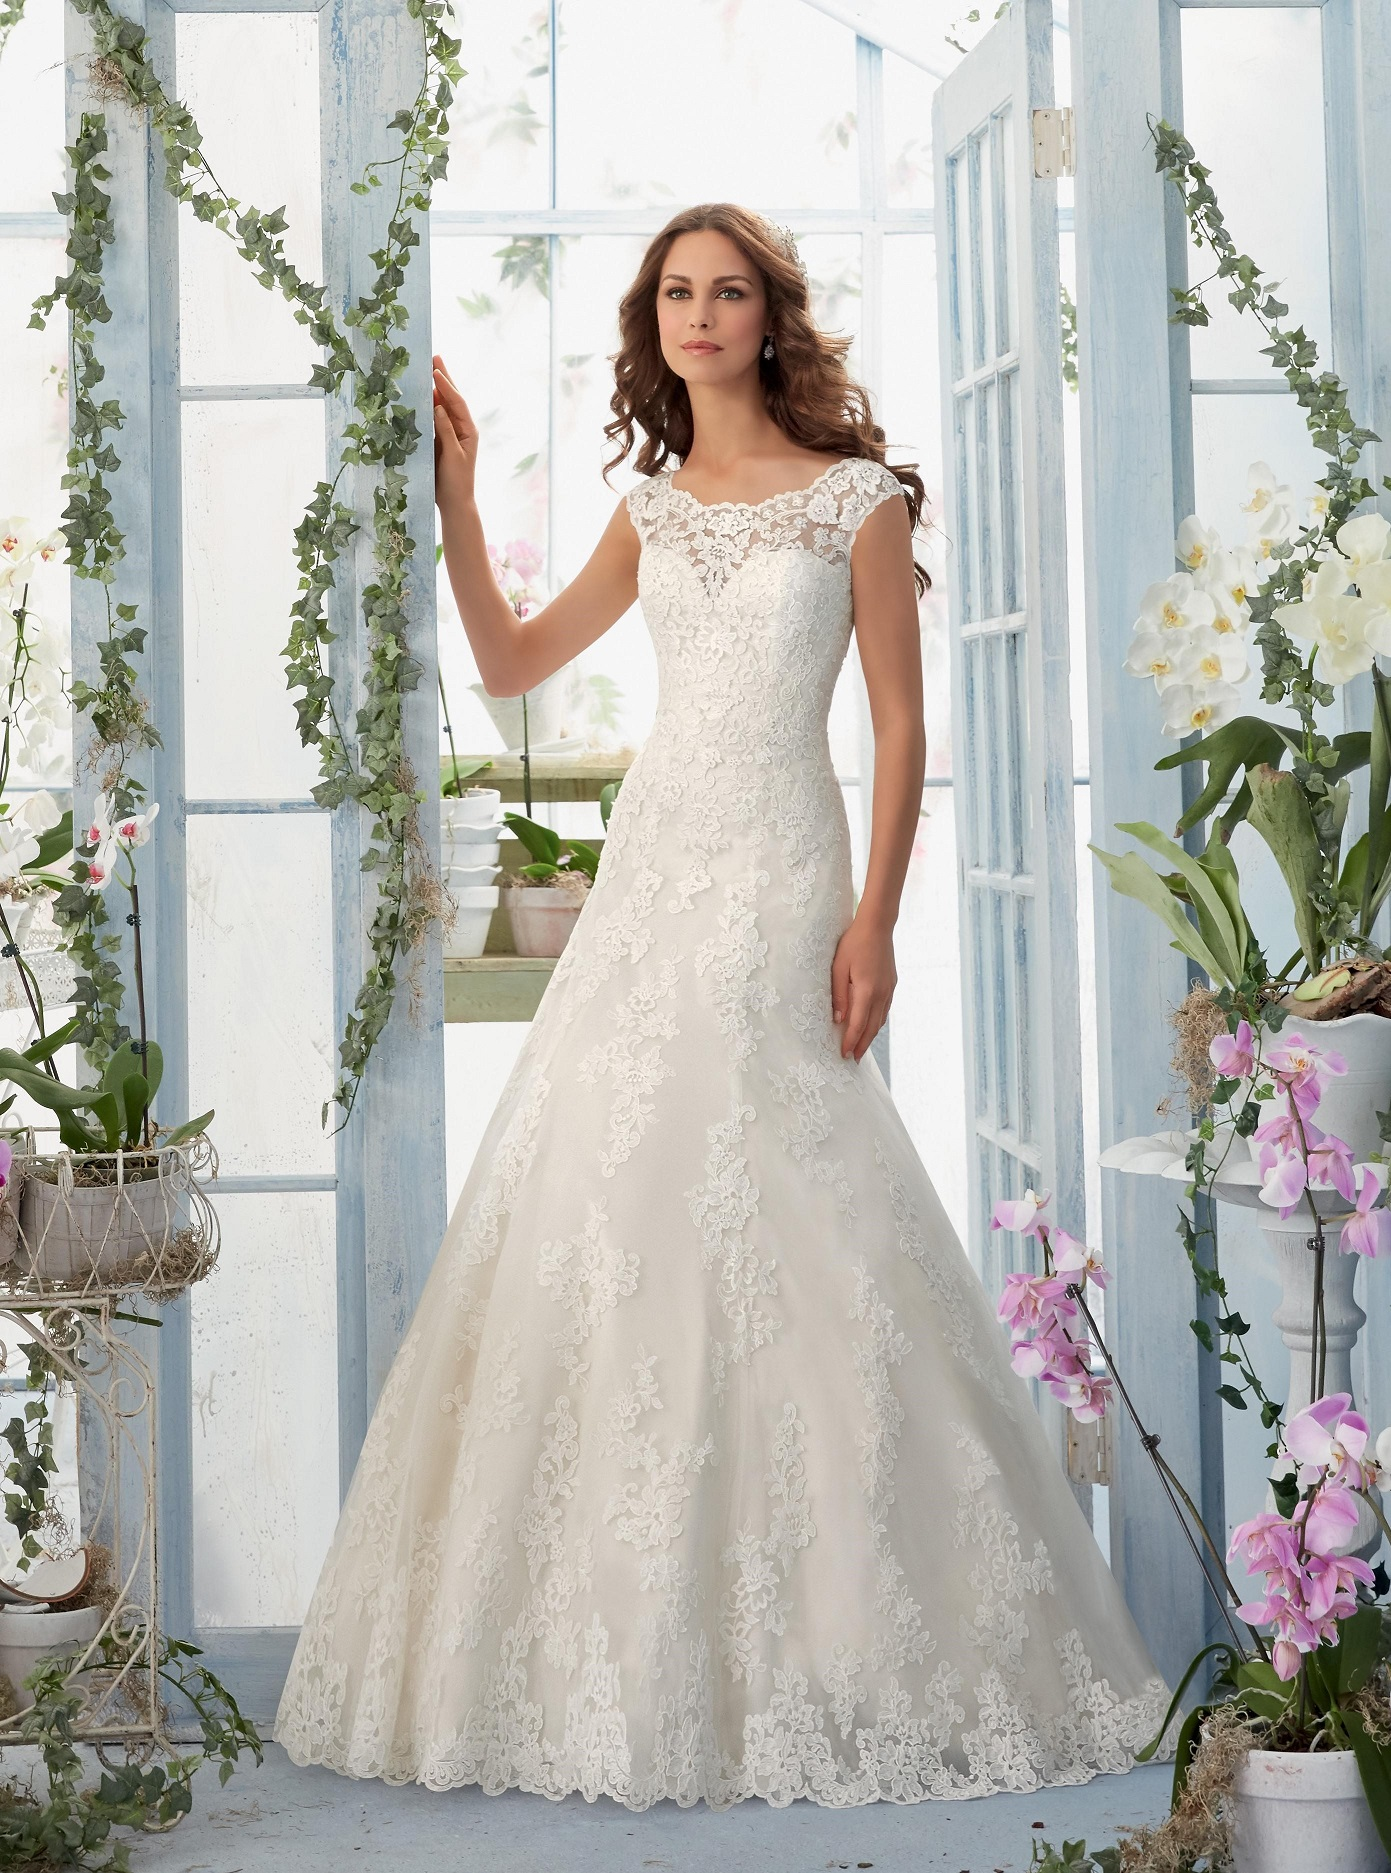 Mori Lee - 5410, White-58', Size:40